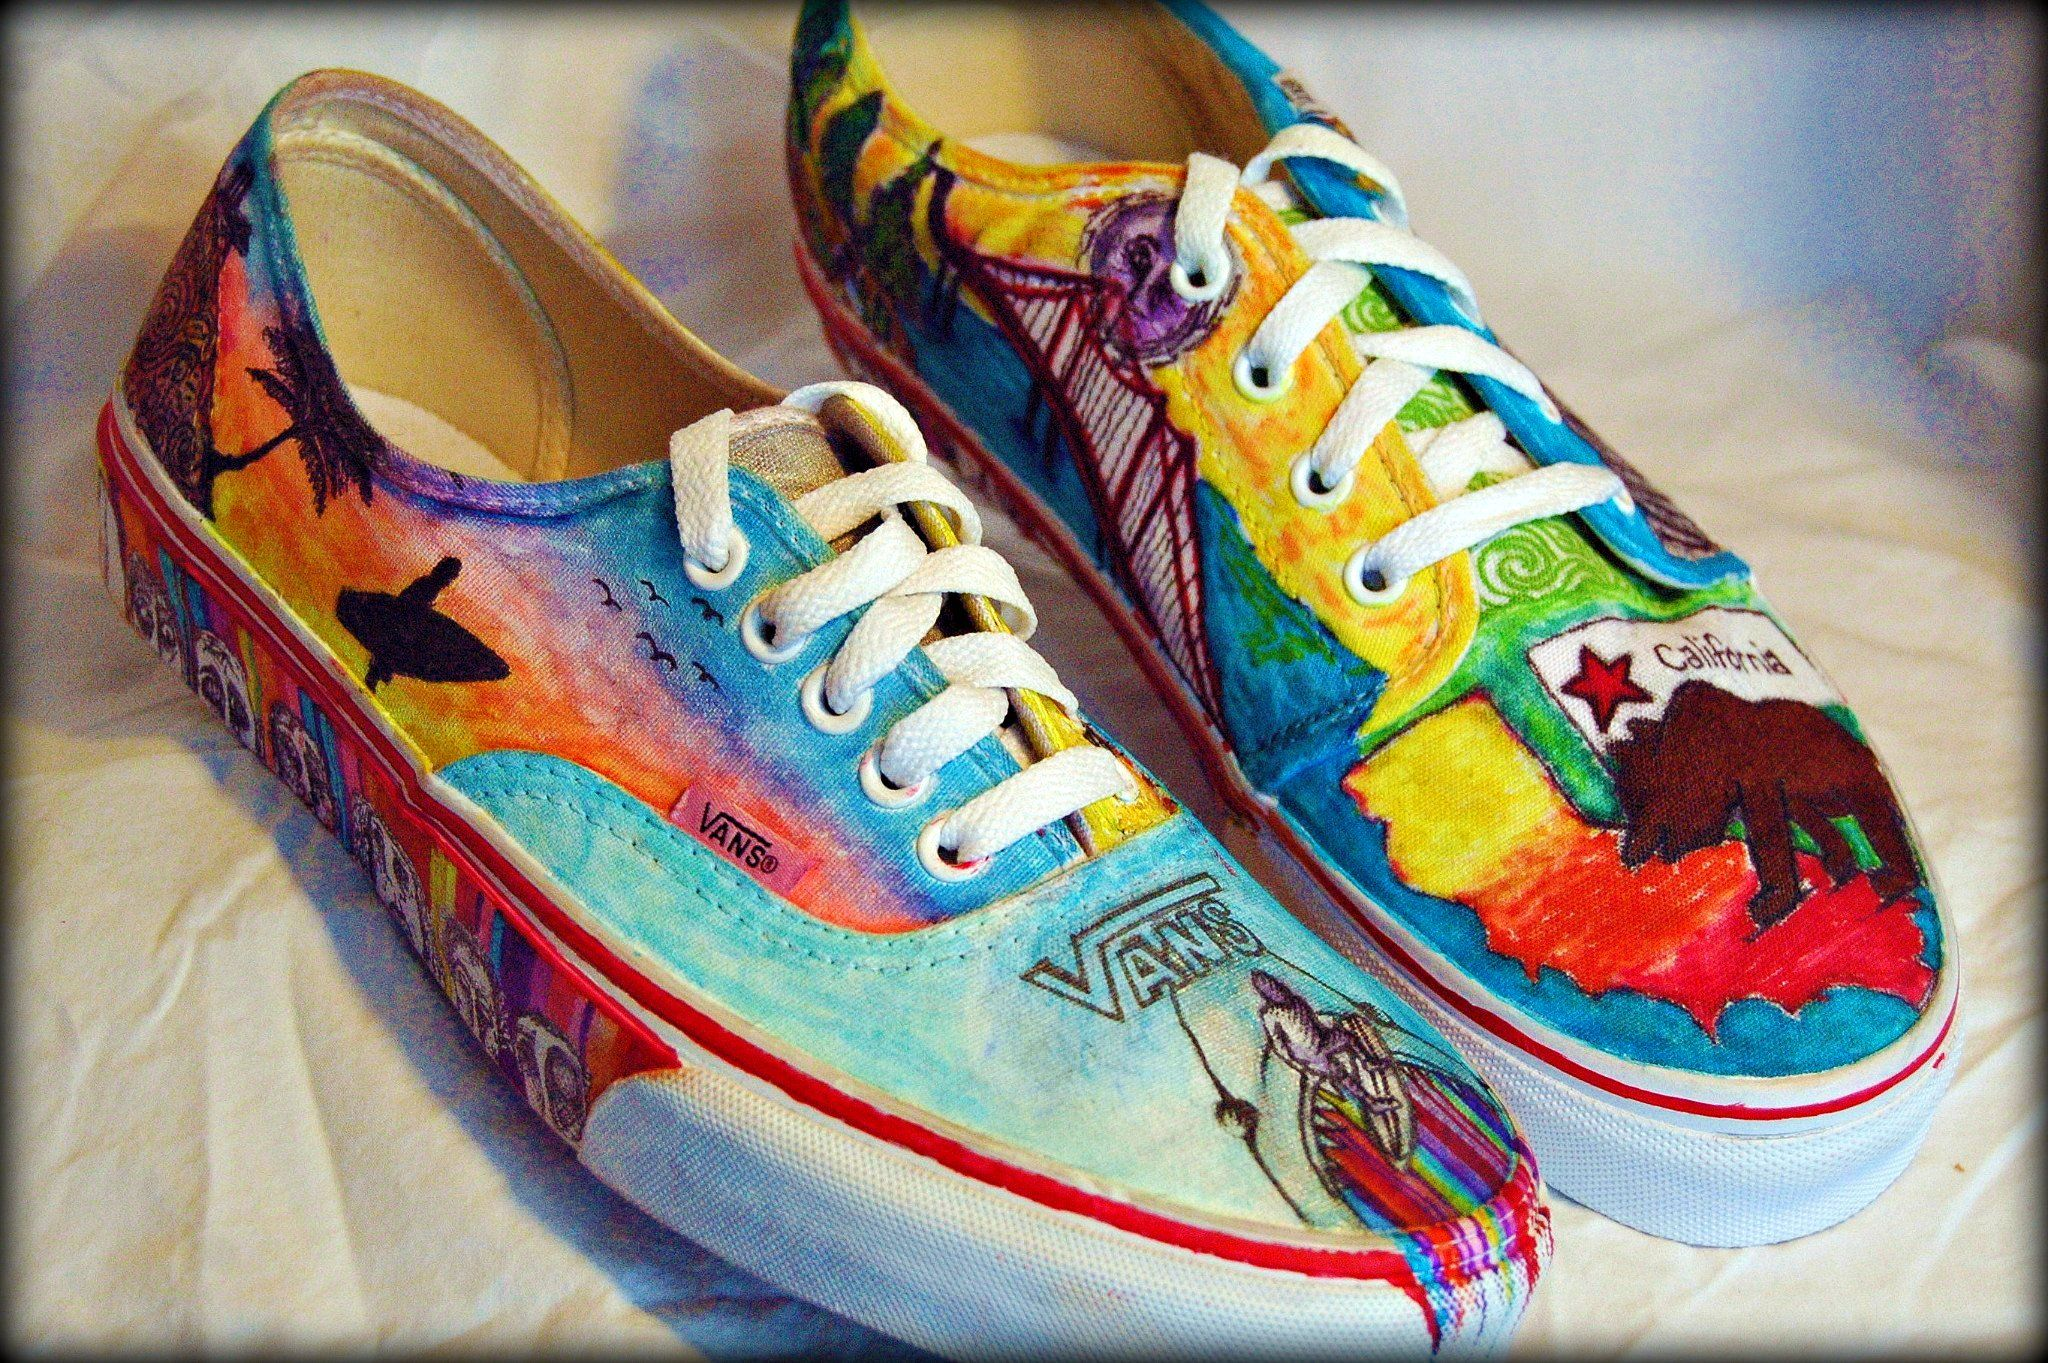 c9cc8a6379 VANS CUSTOM CULTURE high school art program design contest....This is the